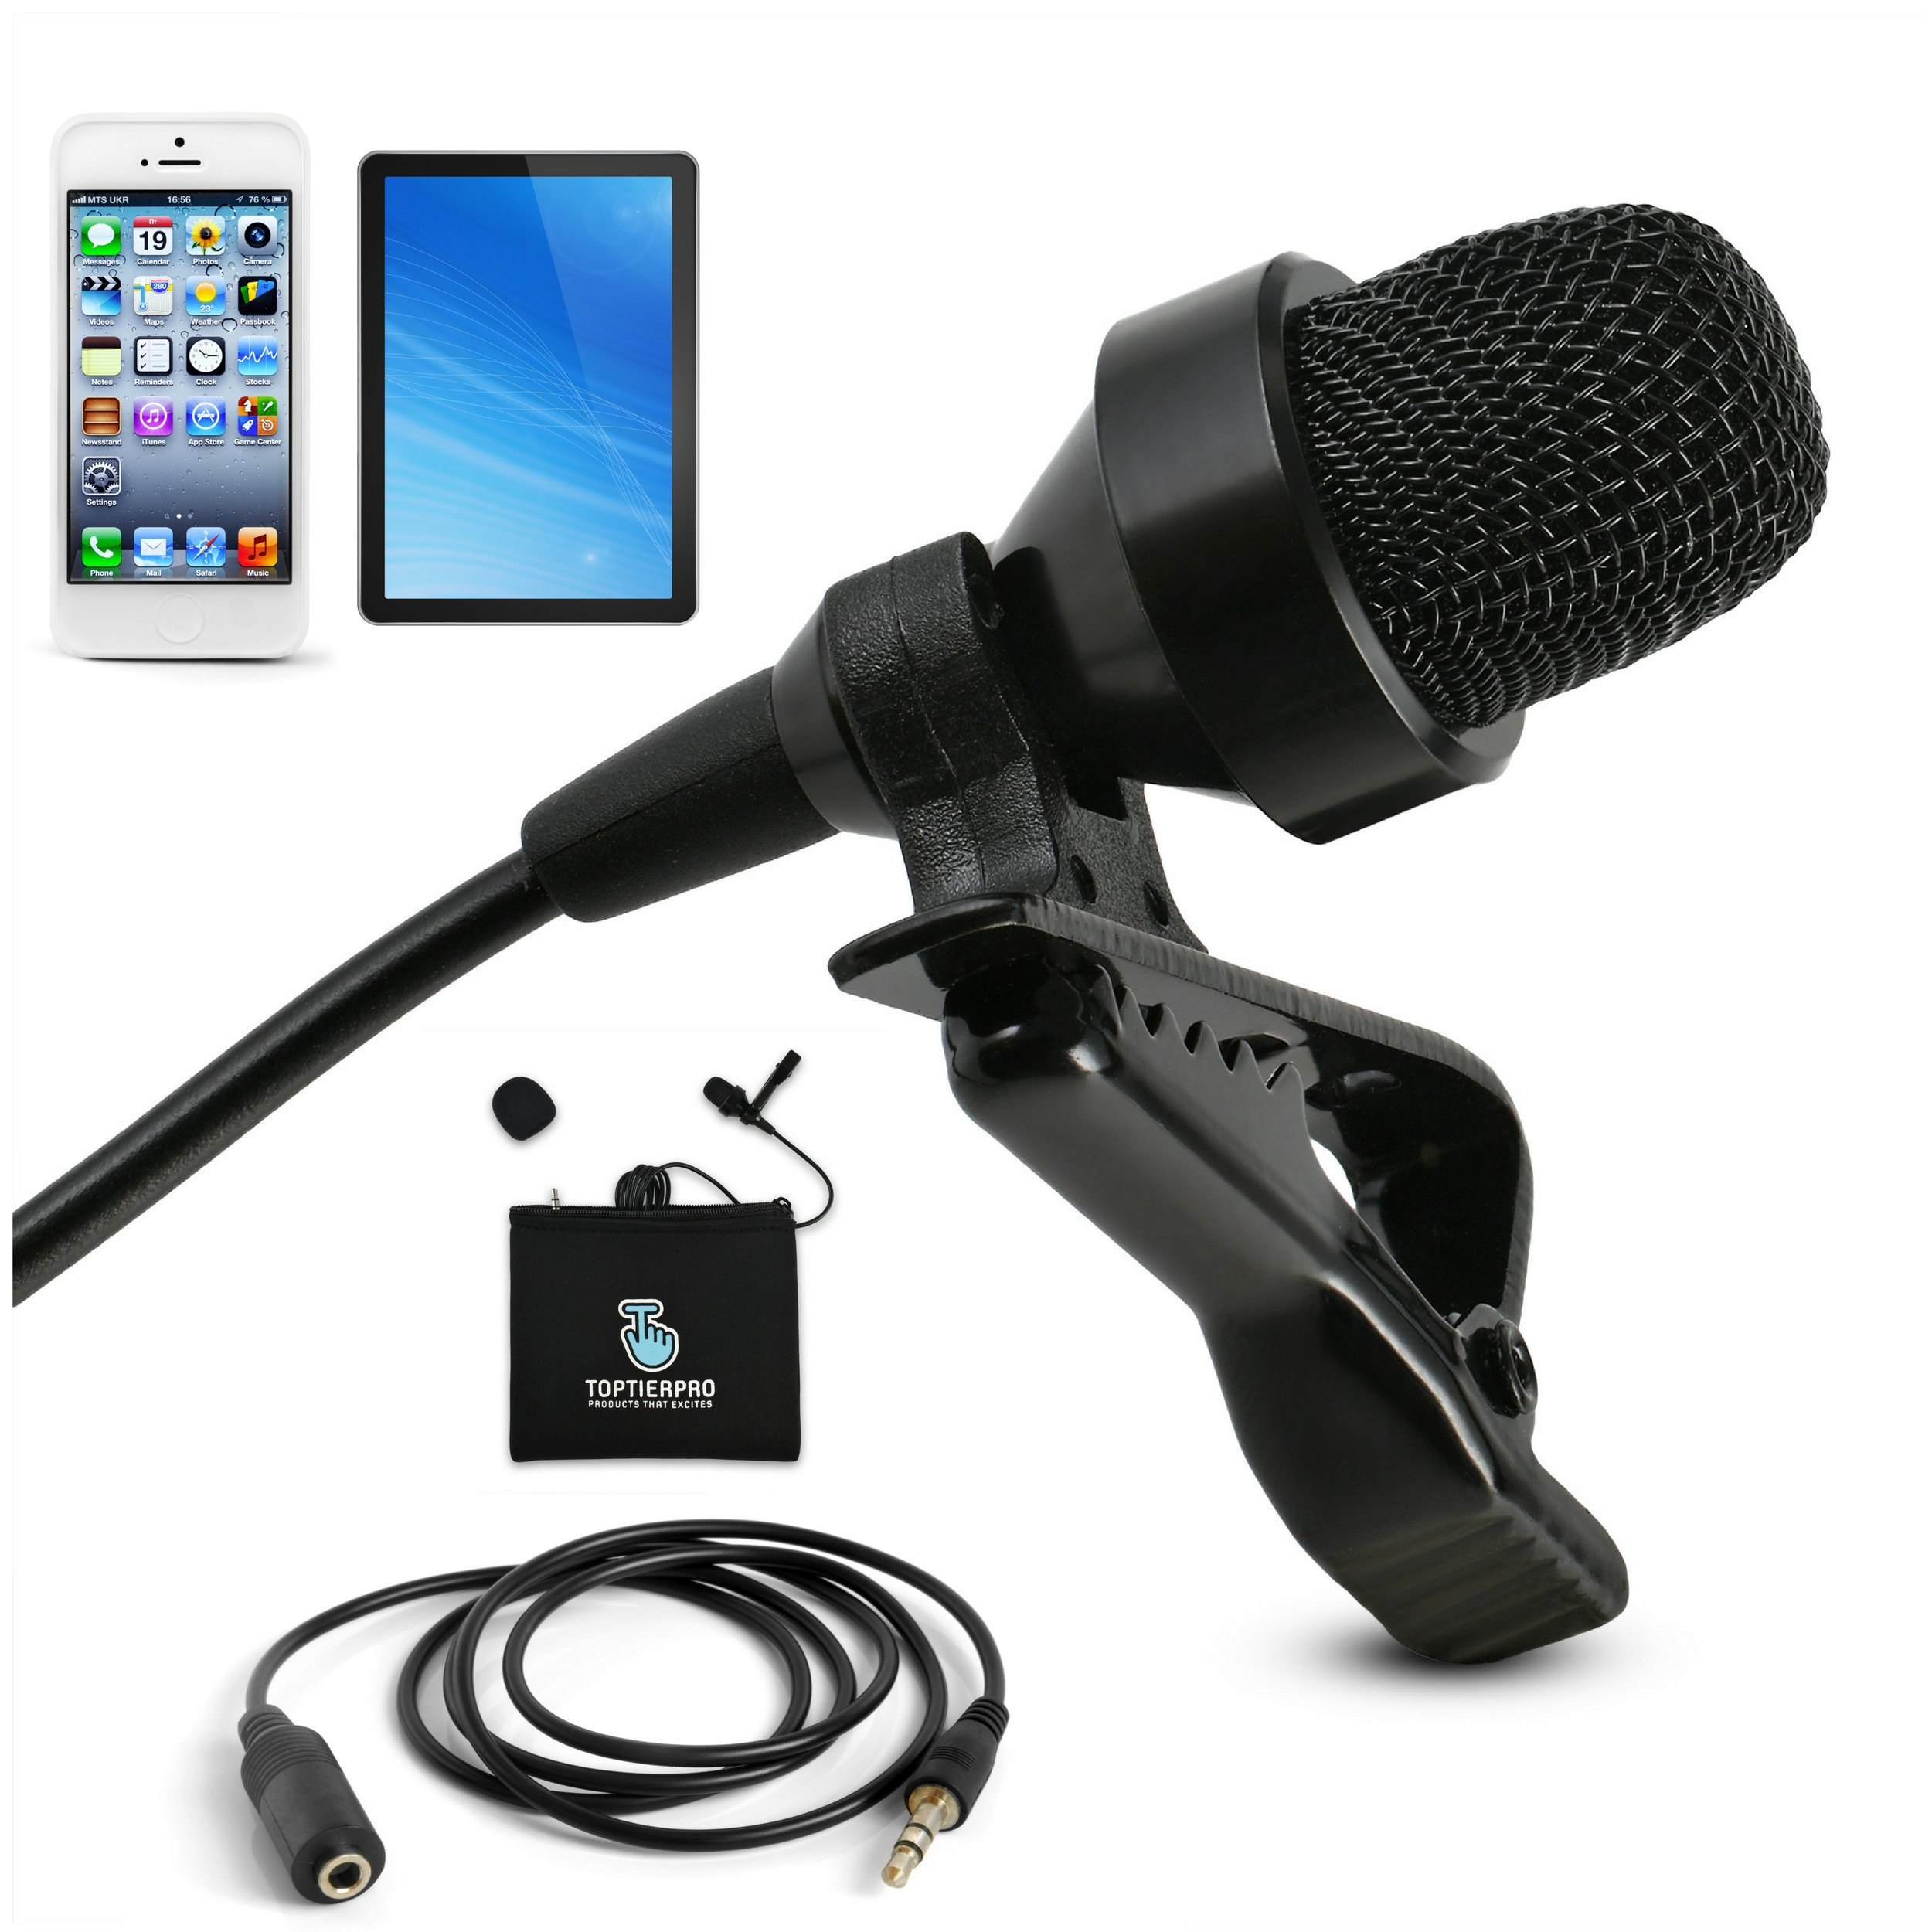 PRlME DAY SALE- Professional Mini Lavalier Microphone For iPhone & Android - Omnidirectional Lapel Mic Best For Recording Youtube, Video Conference, Podcast, Voice Dictation - [118 inches Extra Wire] by TOPTIERPRO